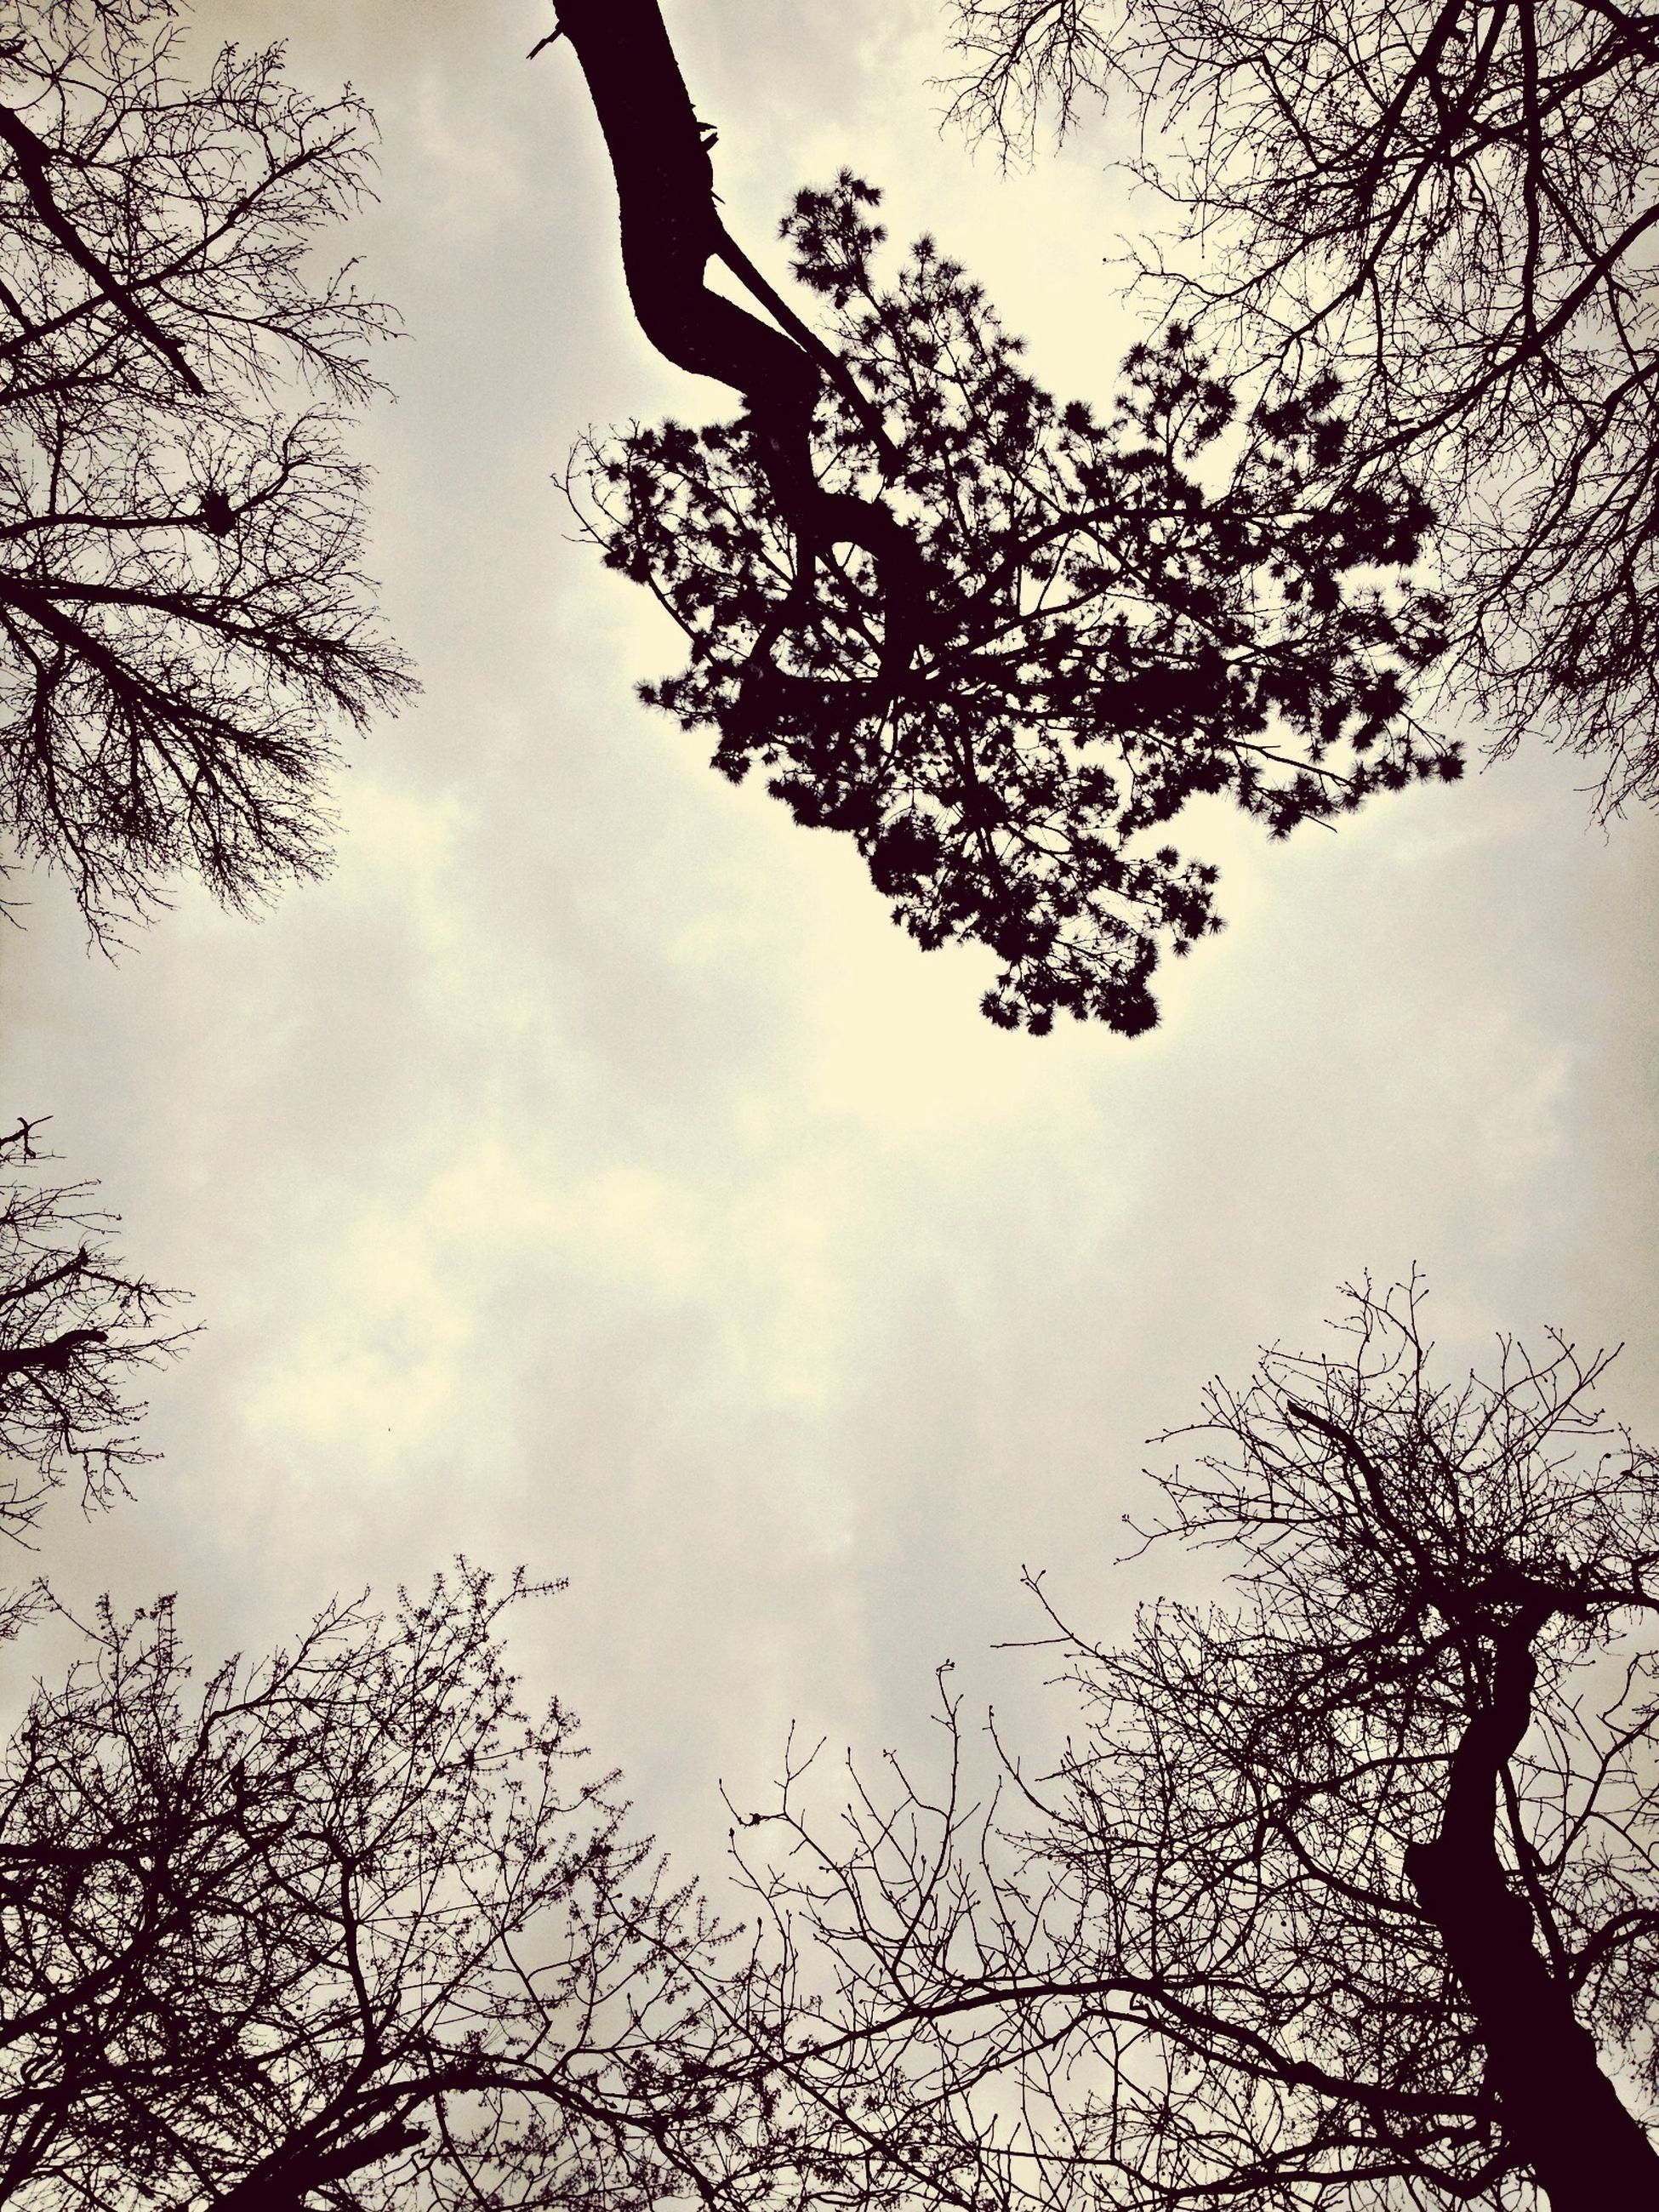 tree, low angle view, sky, branch, bare tree, silhouette, cloud - sky, nature, cloud, tranquility, outdoors, day, cloudy, beauty in nature, scenics, growth, tree trunk, dusk